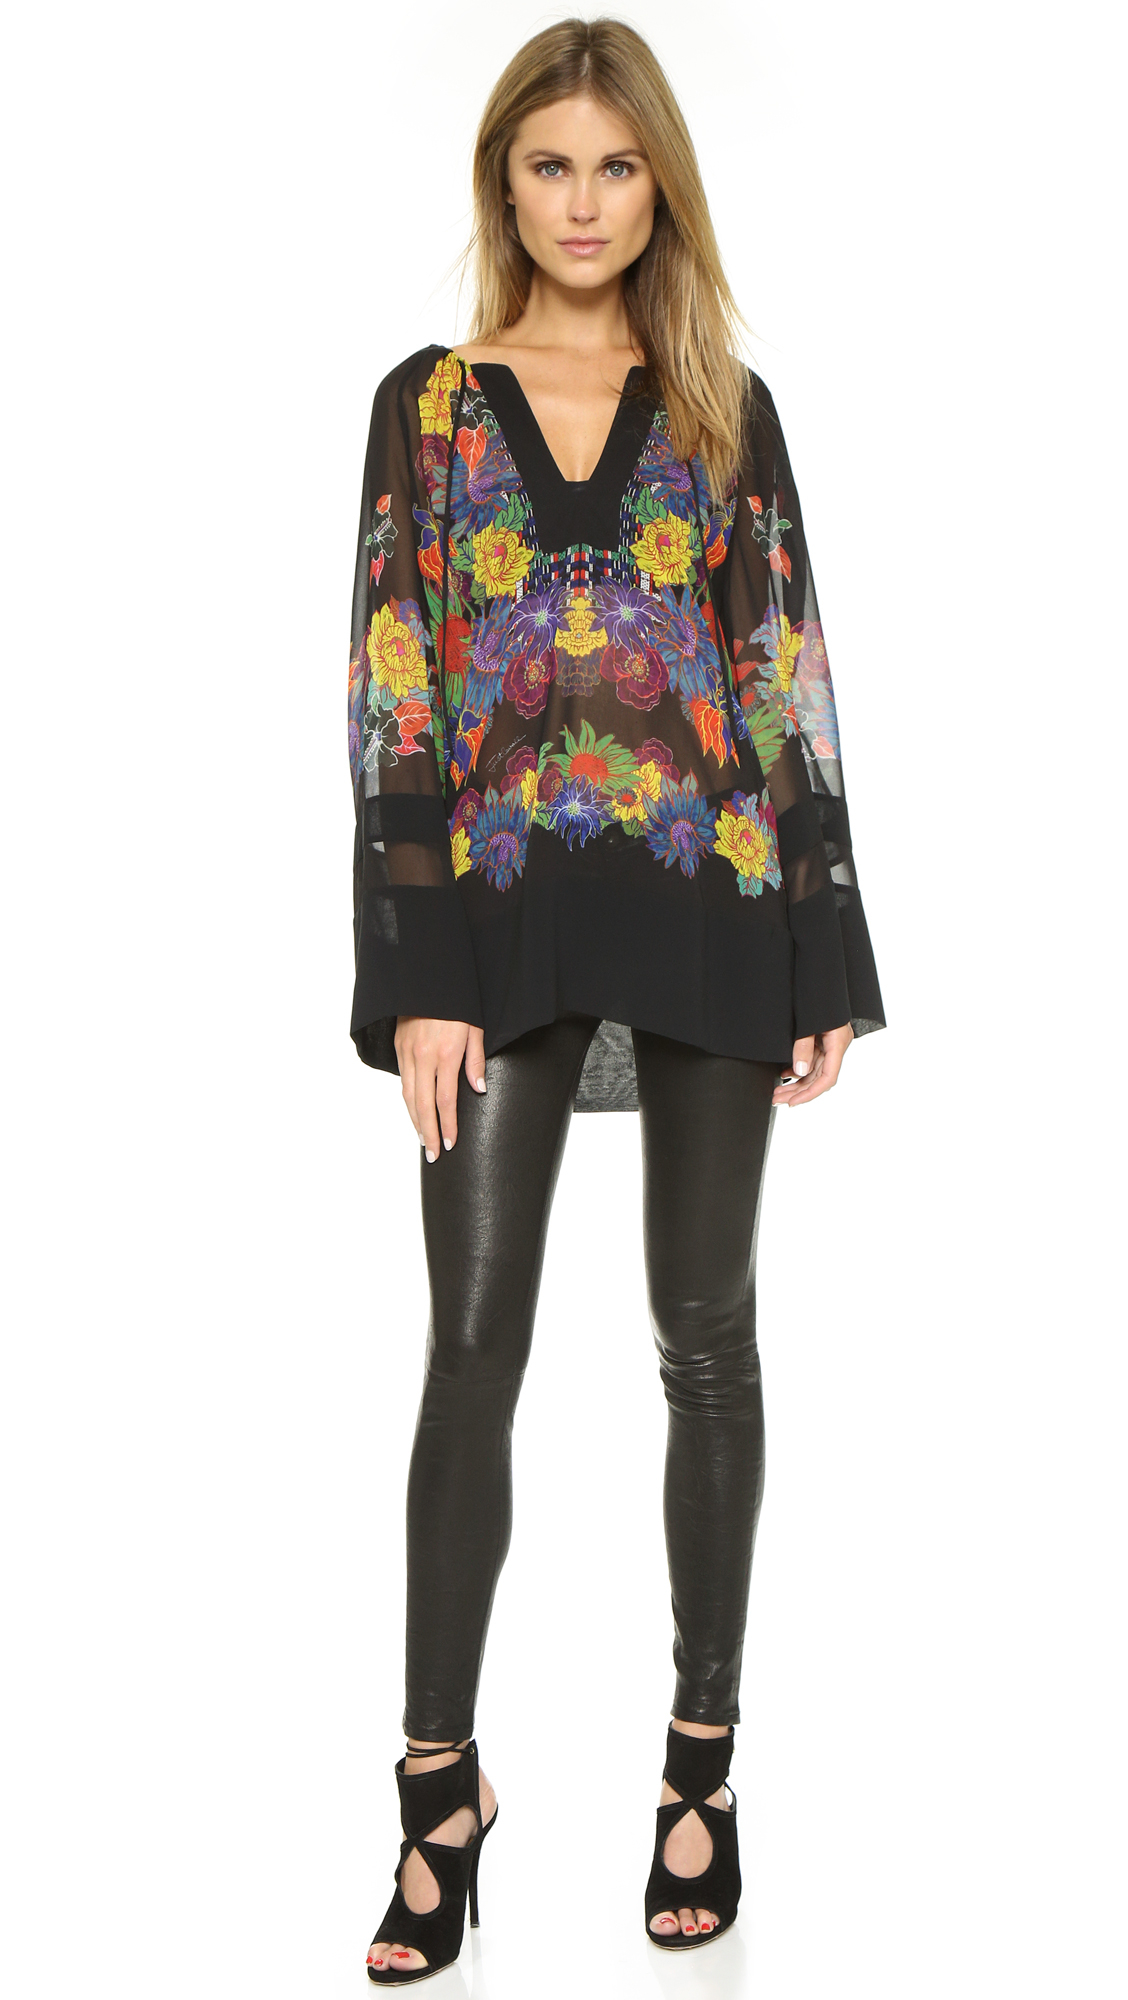 Lyst Just Cavalli Mexican Couture Print Blouse Black Variant In